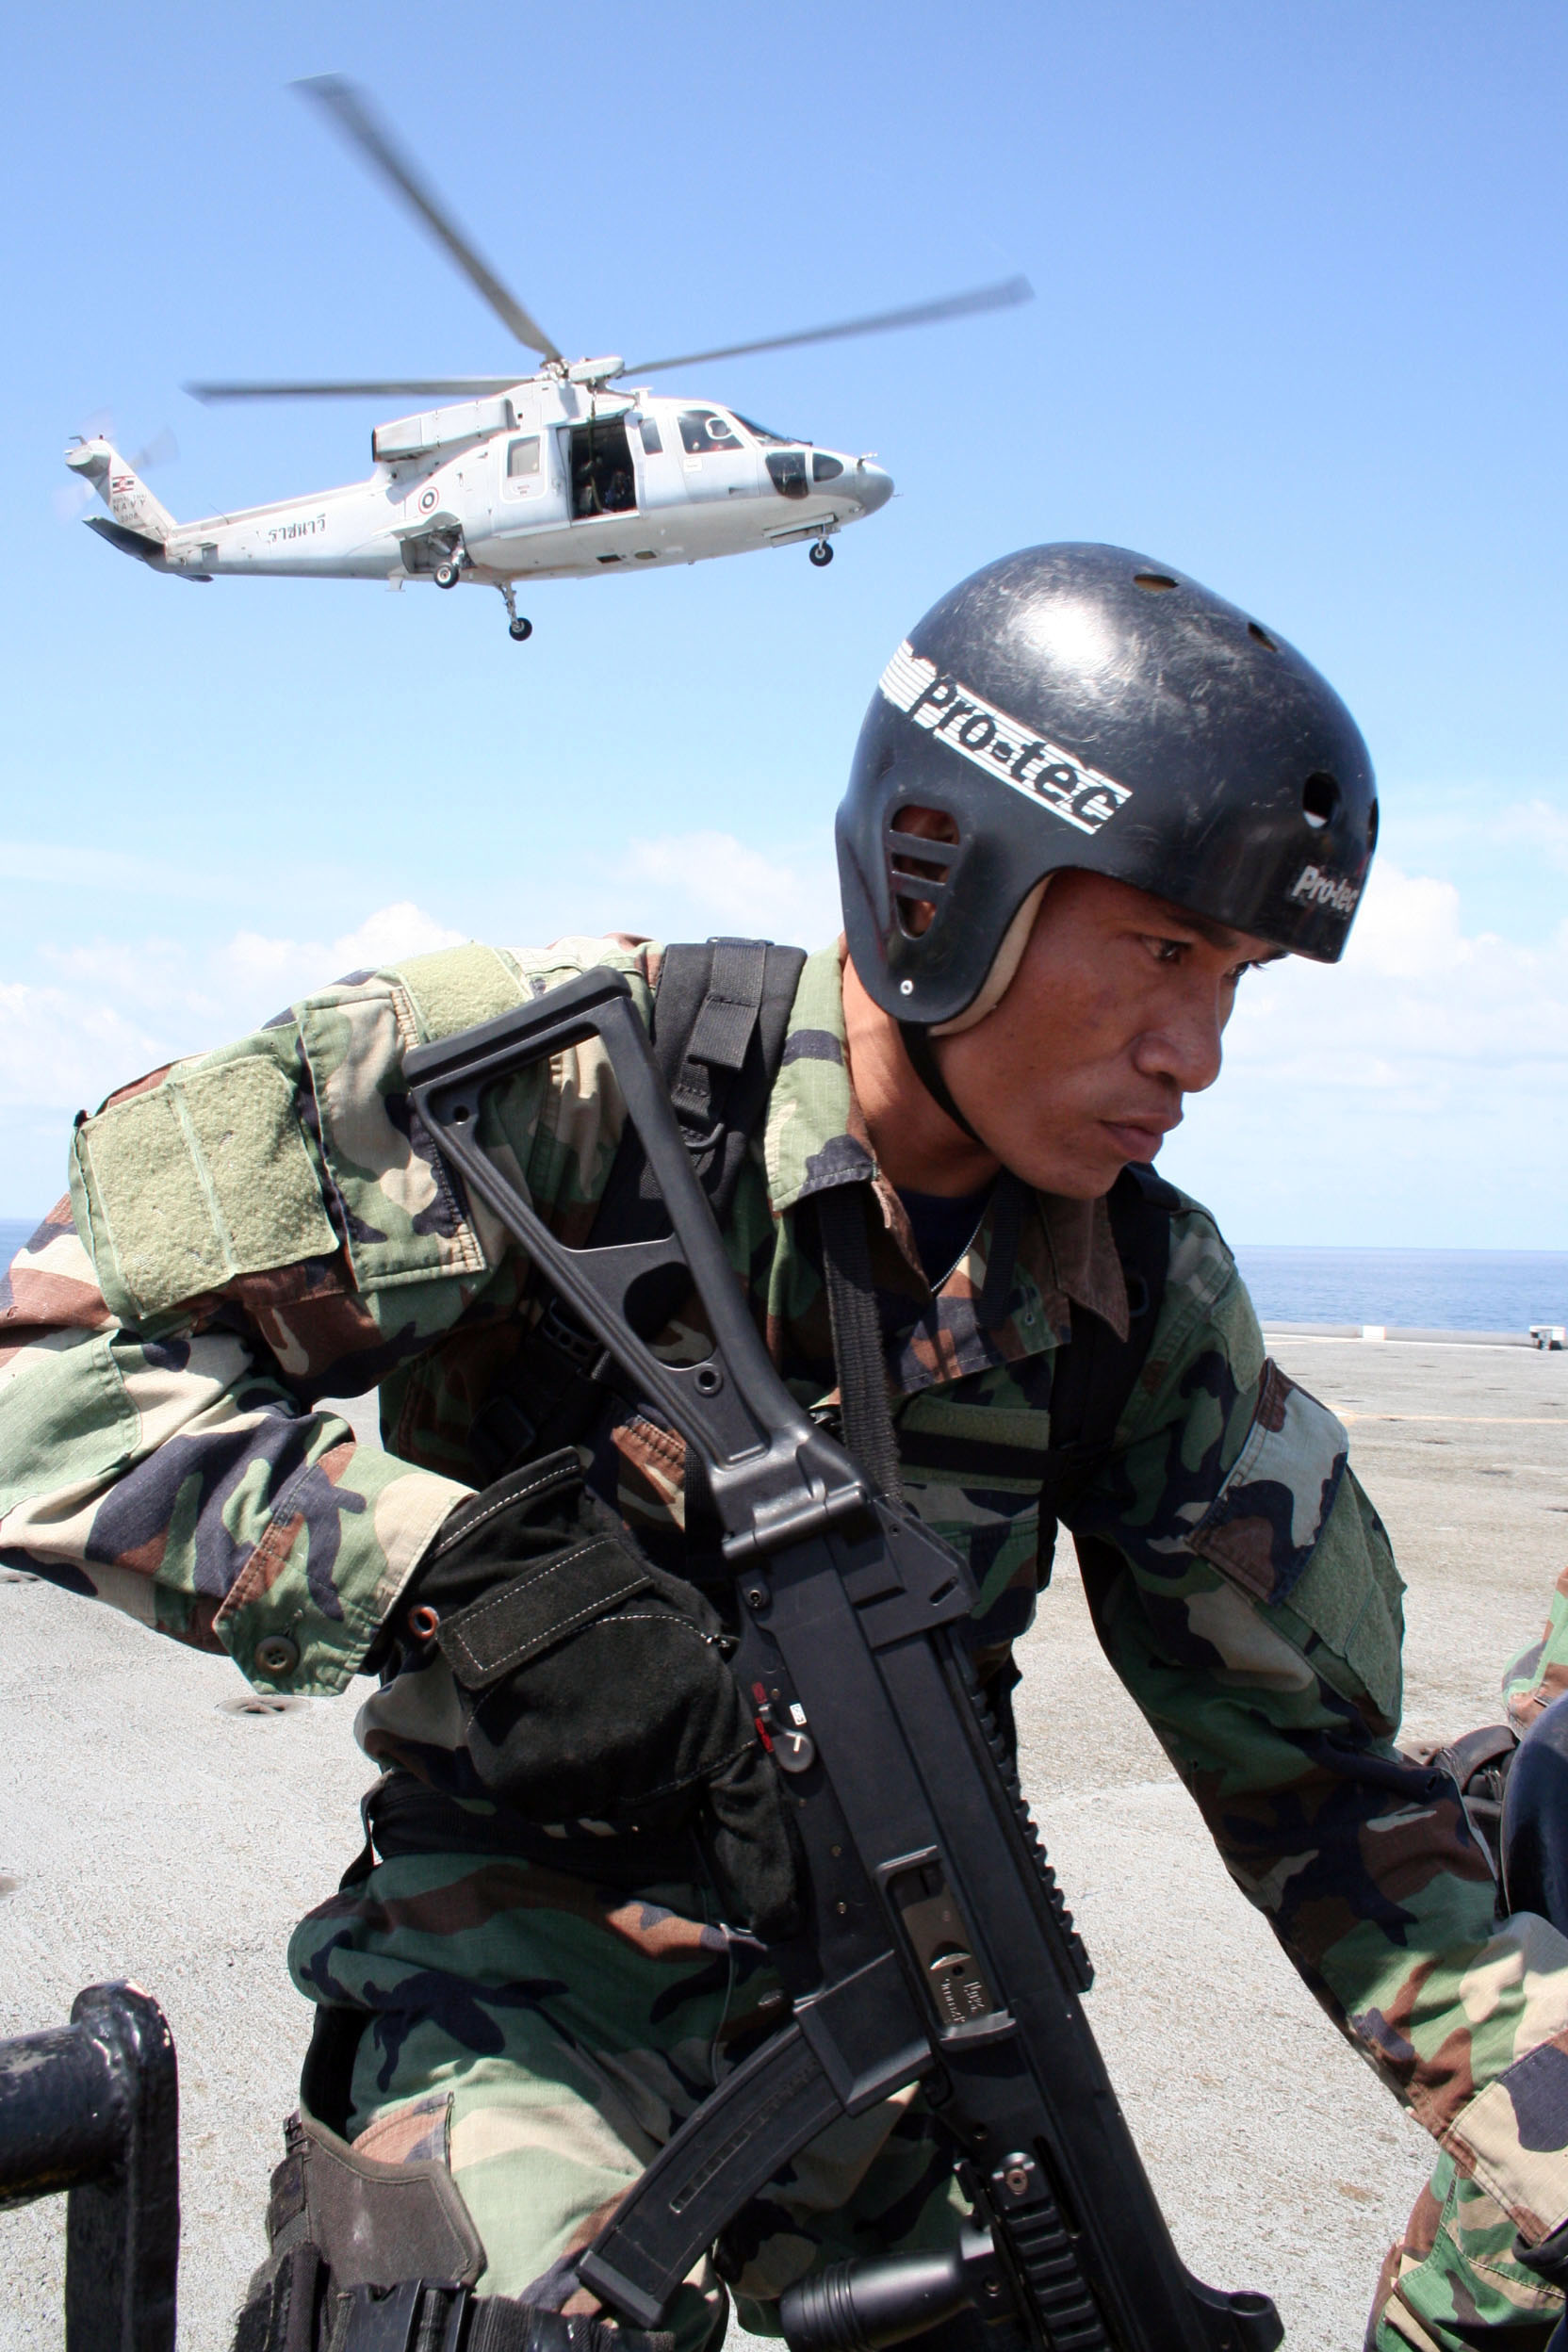 File:US Navy 080818-N-3392B-001 A Royal Thai Navy SEAL ...